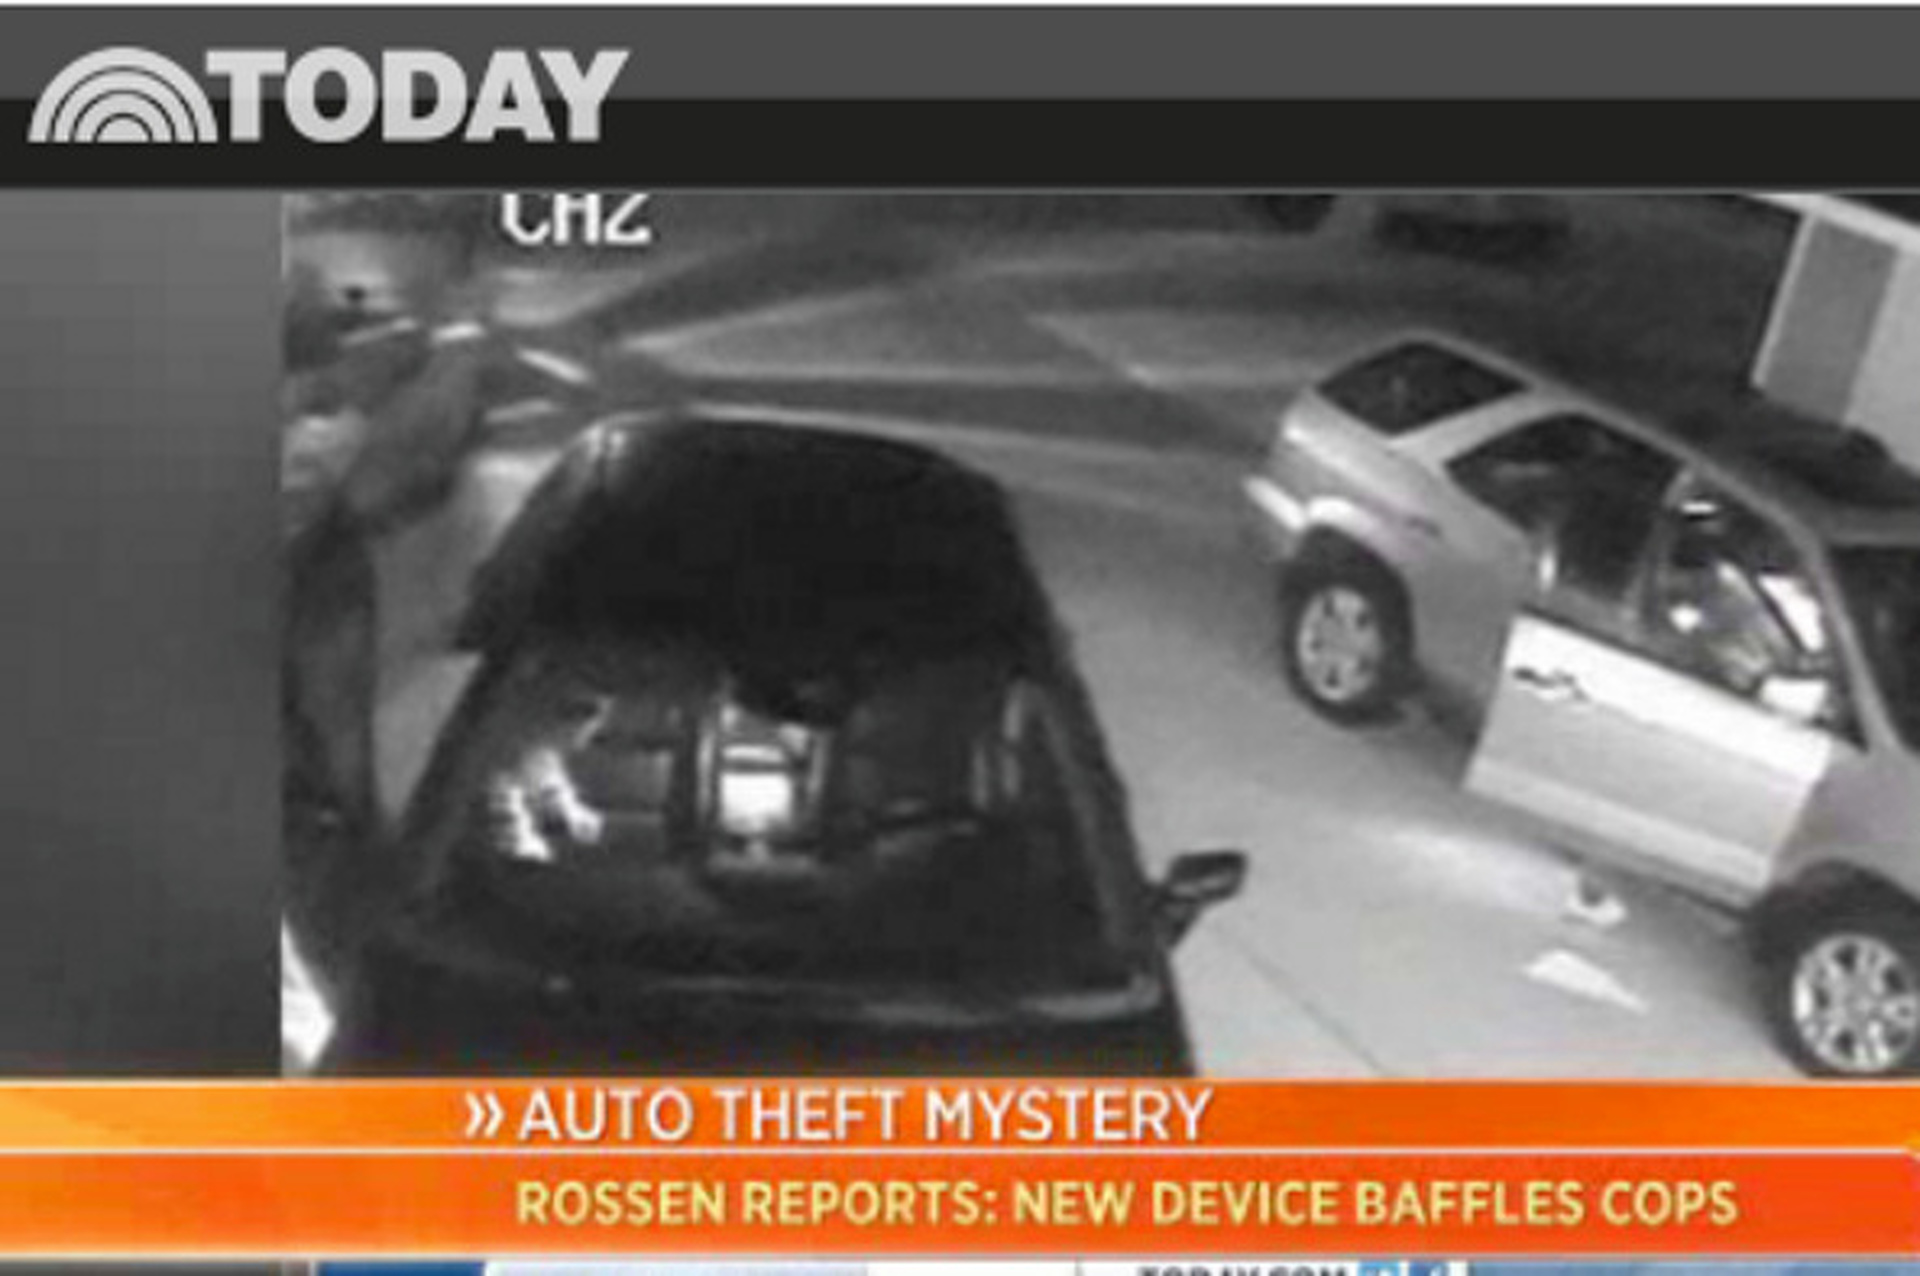 Car Thieves Have New, High Tech Gadgets [video]